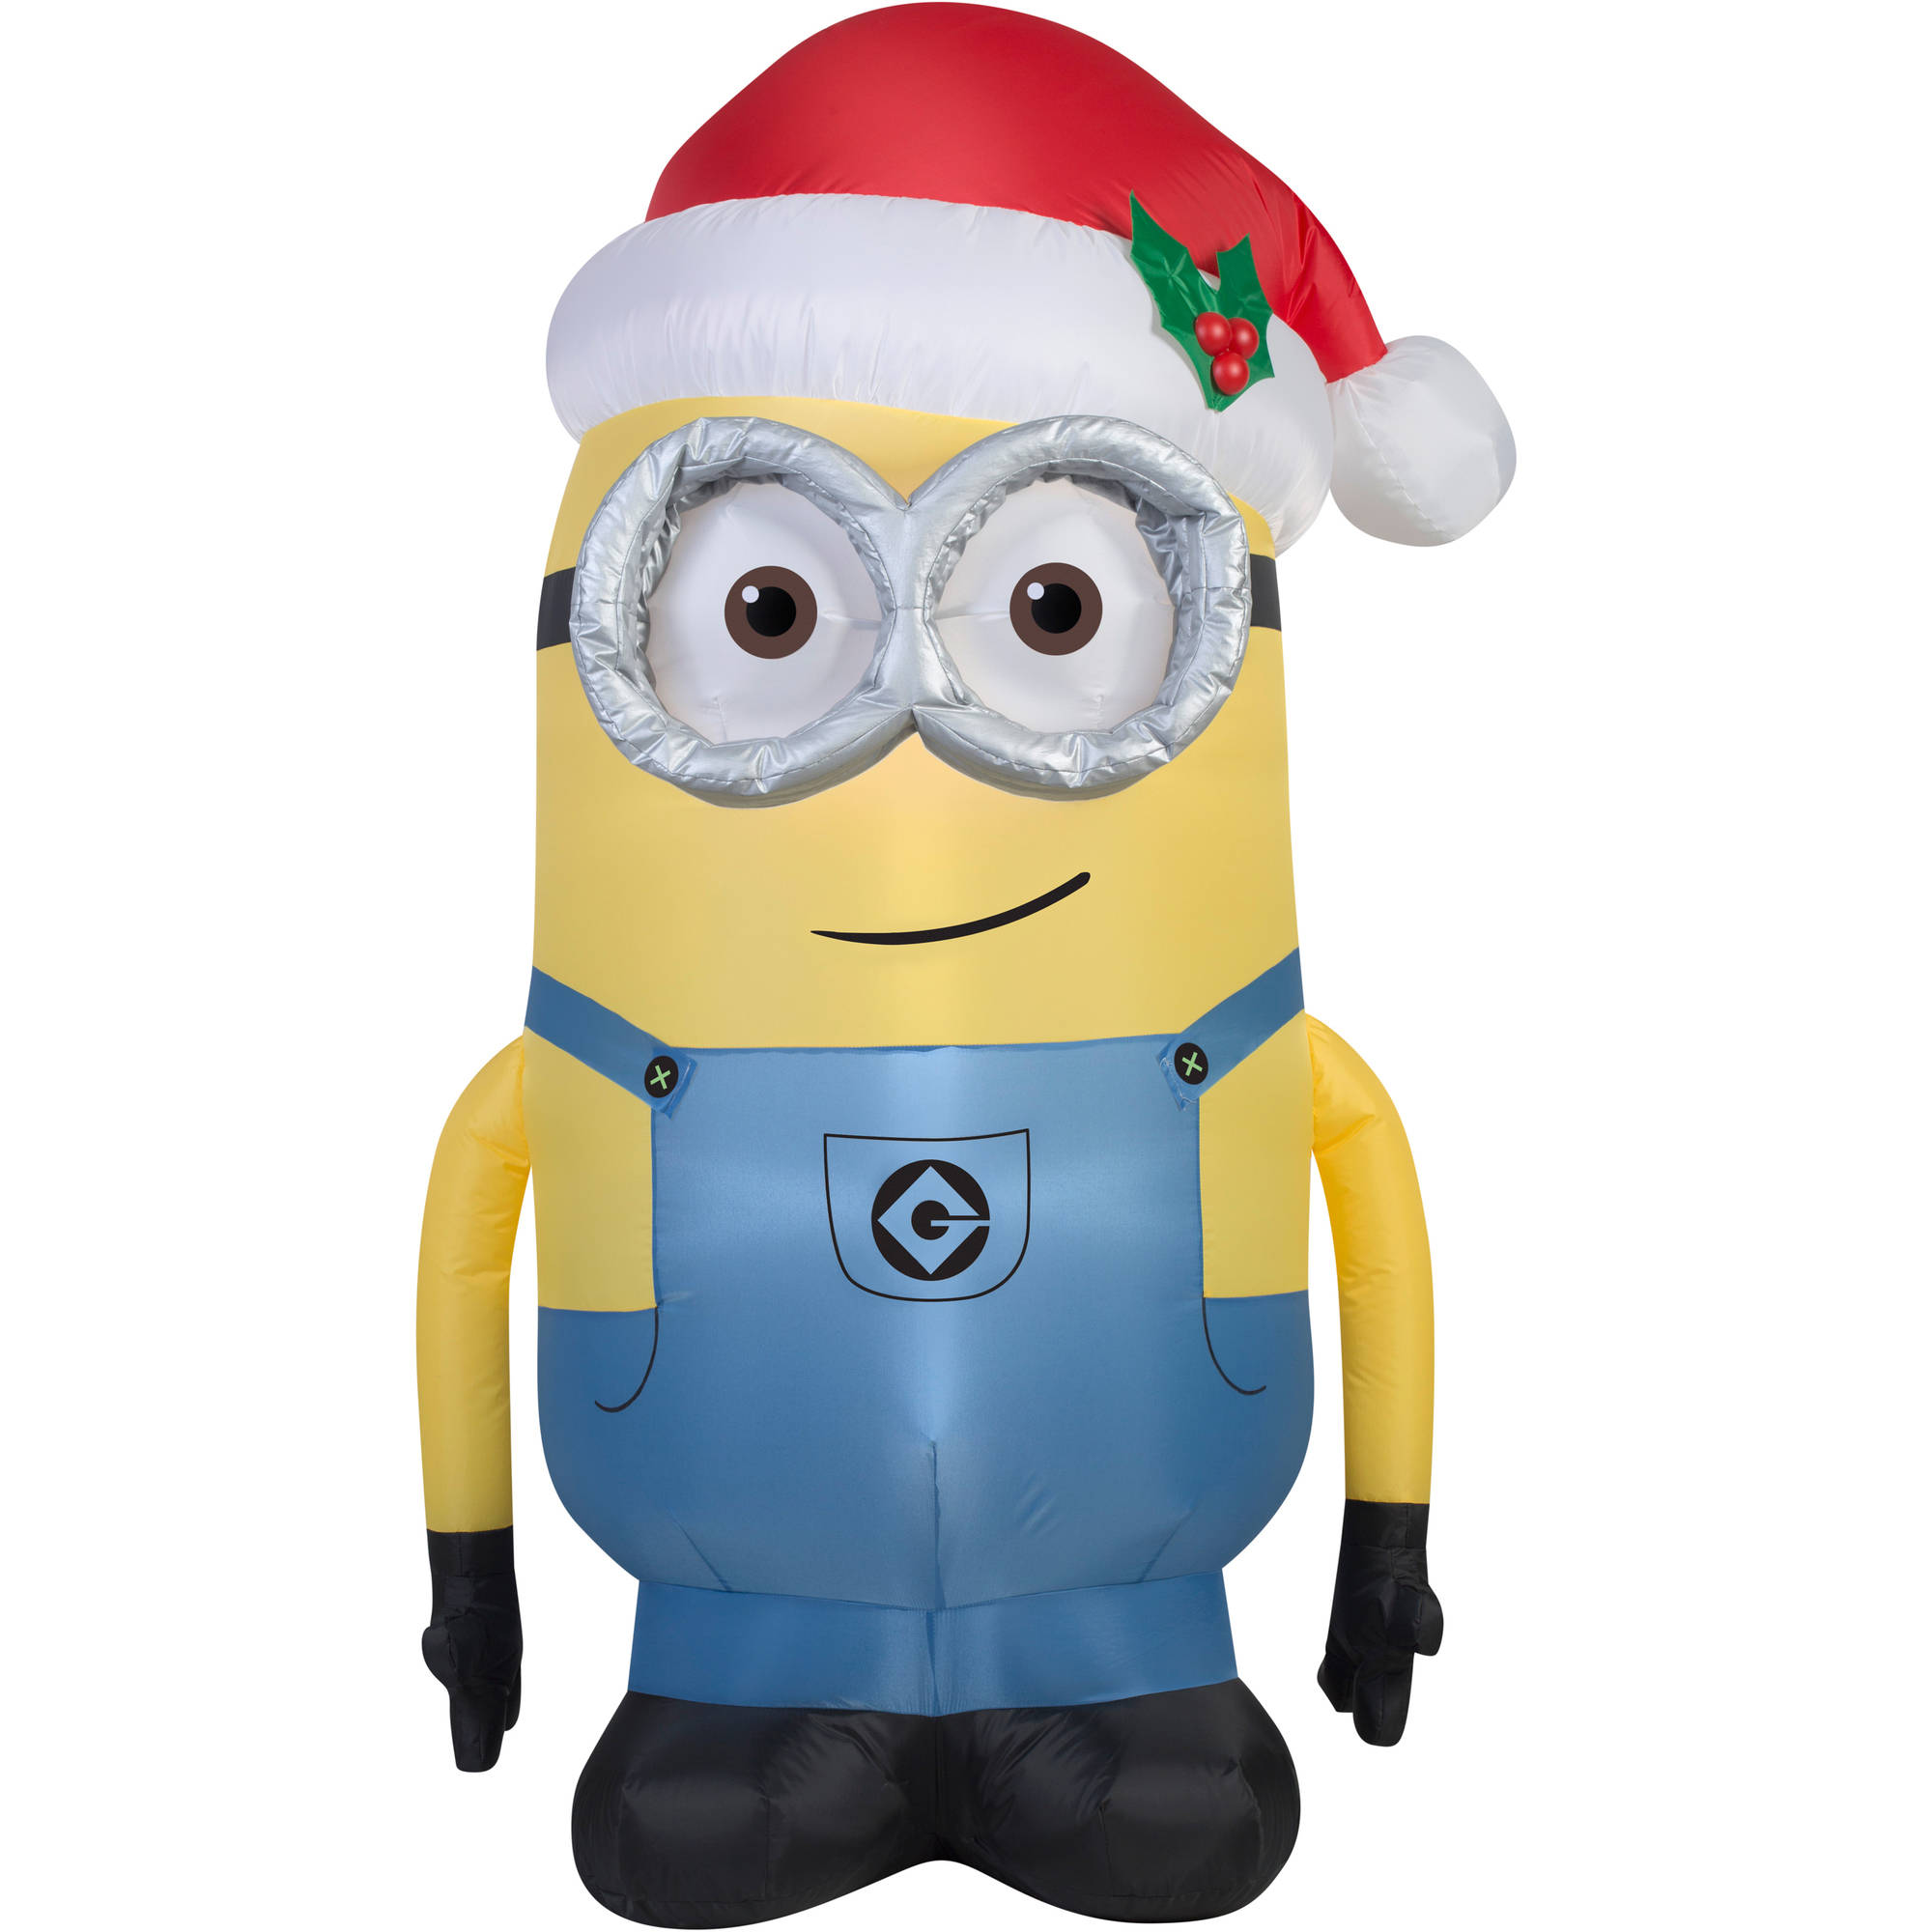 5 Airblown Inflatable Minion Dave With Santa Hat